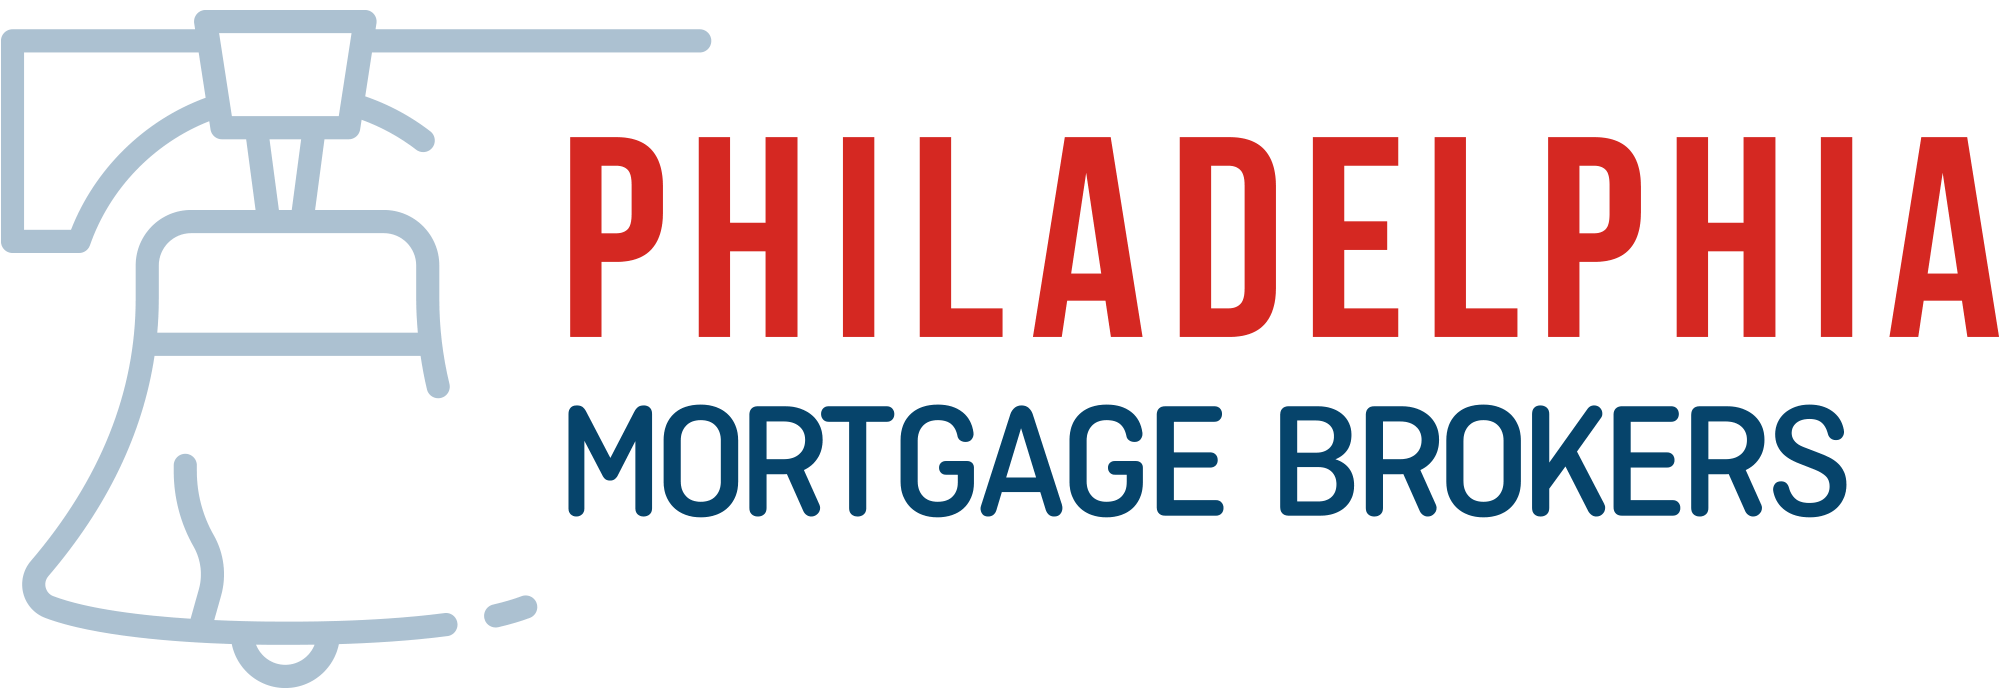 Philadelphia Mortgage Brokers